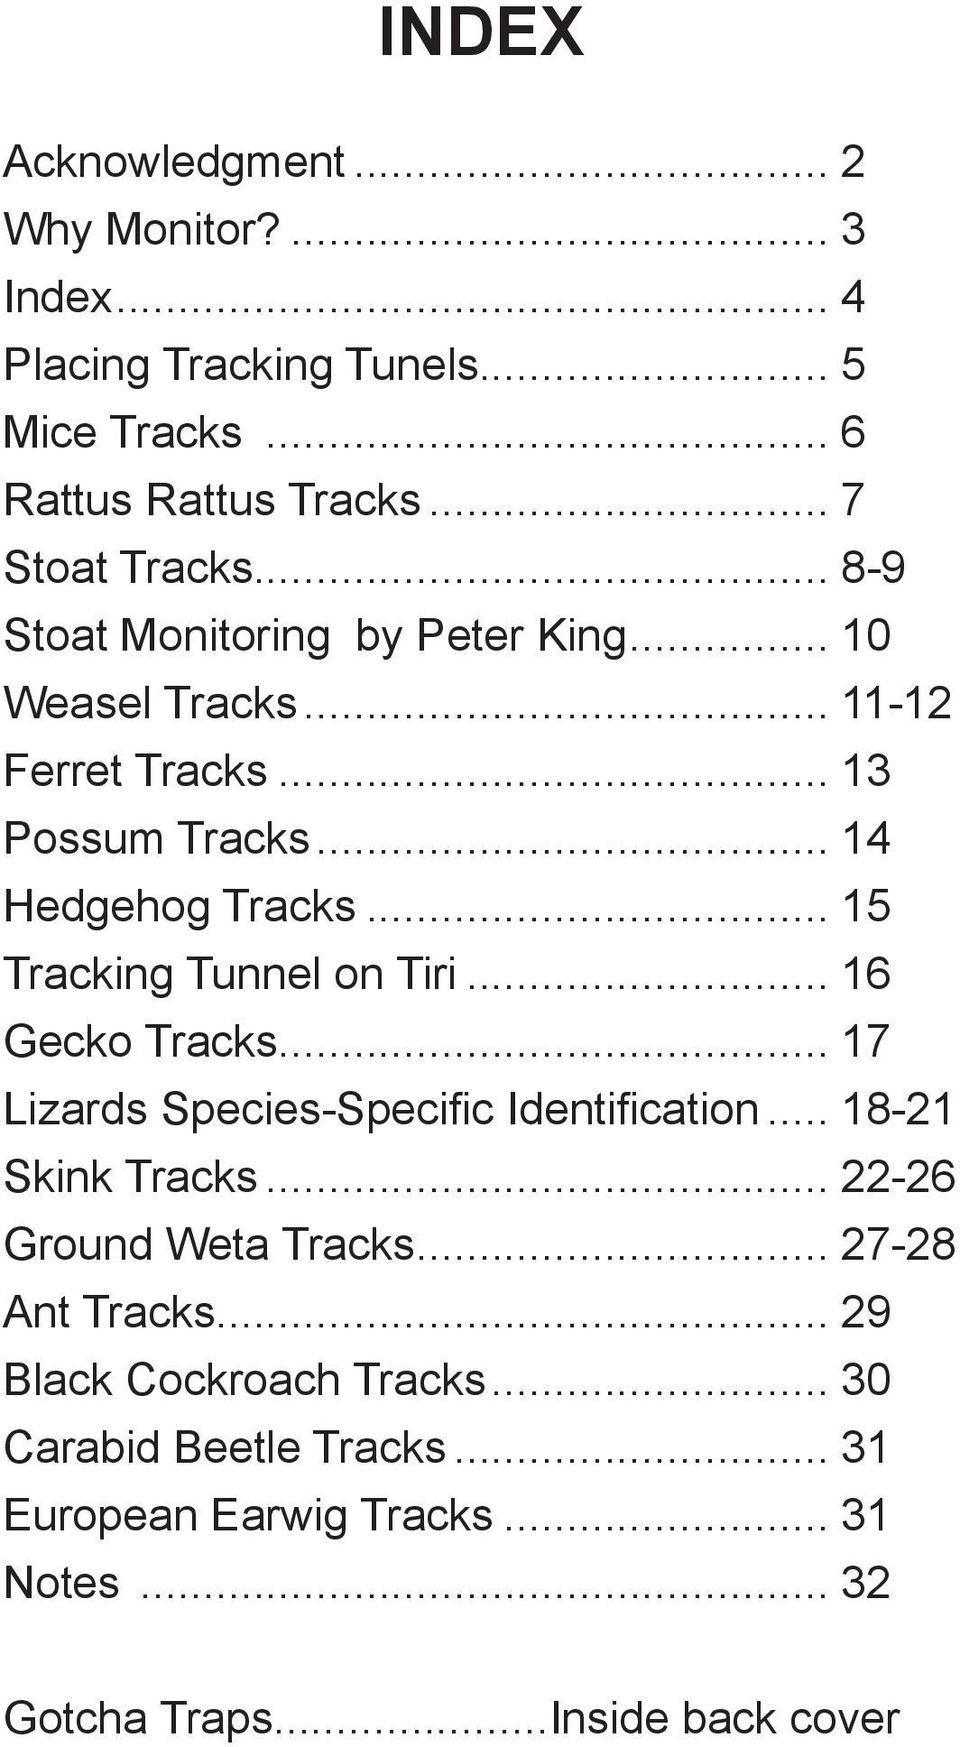 .. 15 Tracking Tunnel on Tiri... 16 Gecko Tracks... 17 Lizards Species-Specific Identification... 18-21 Skink Tracks.